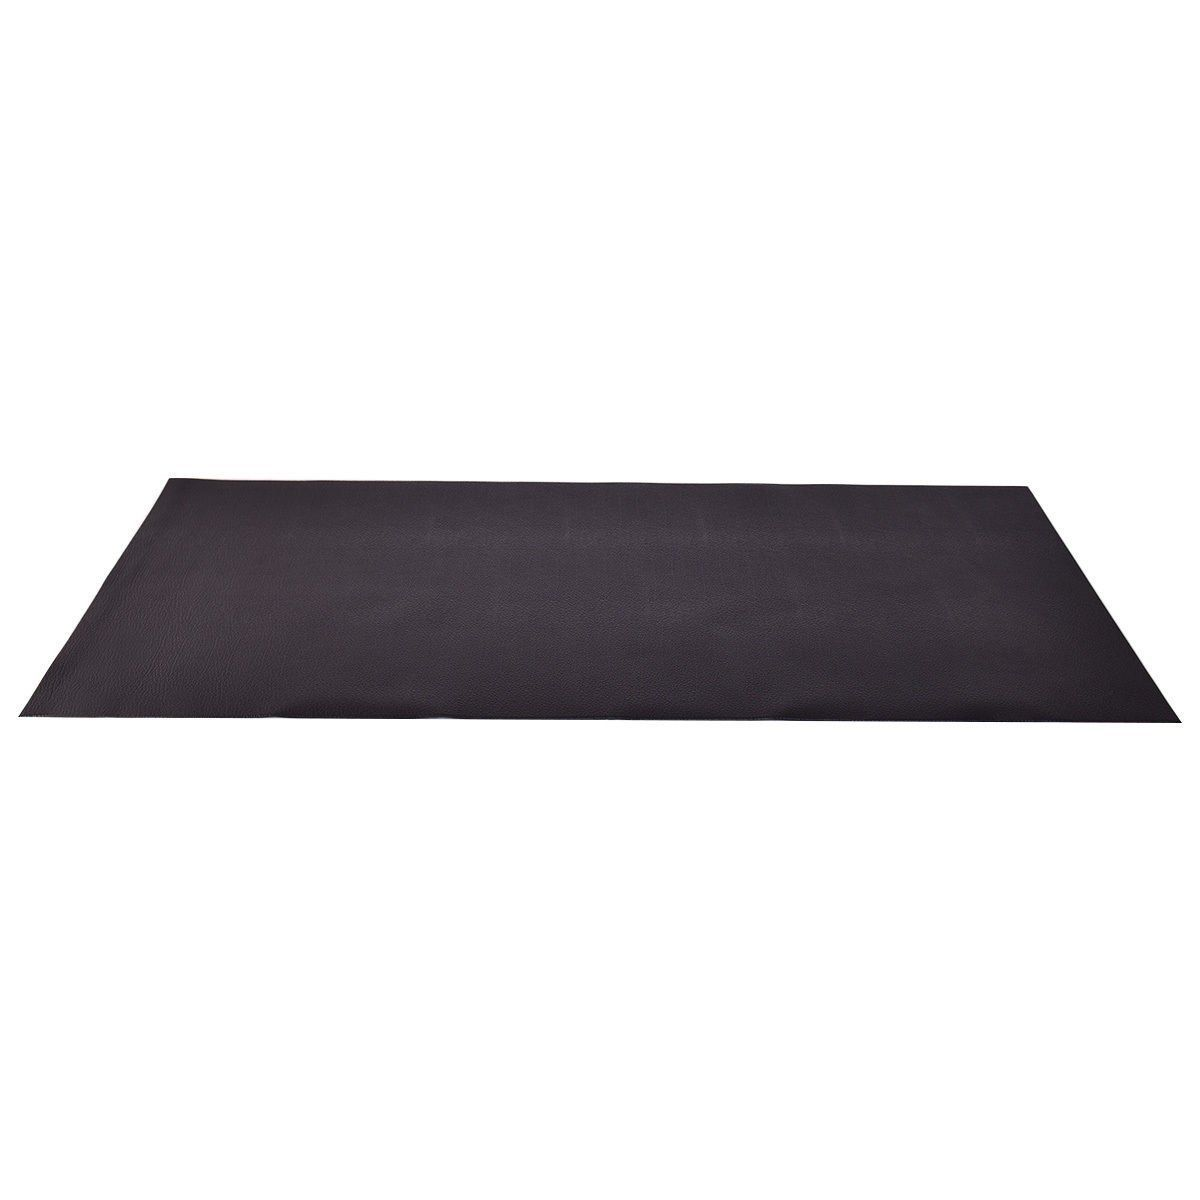 GYMAX Gymax 36 x 78 Large PVC Exercise Mat High Density Folding Floor Protector for Treadmill Equipment